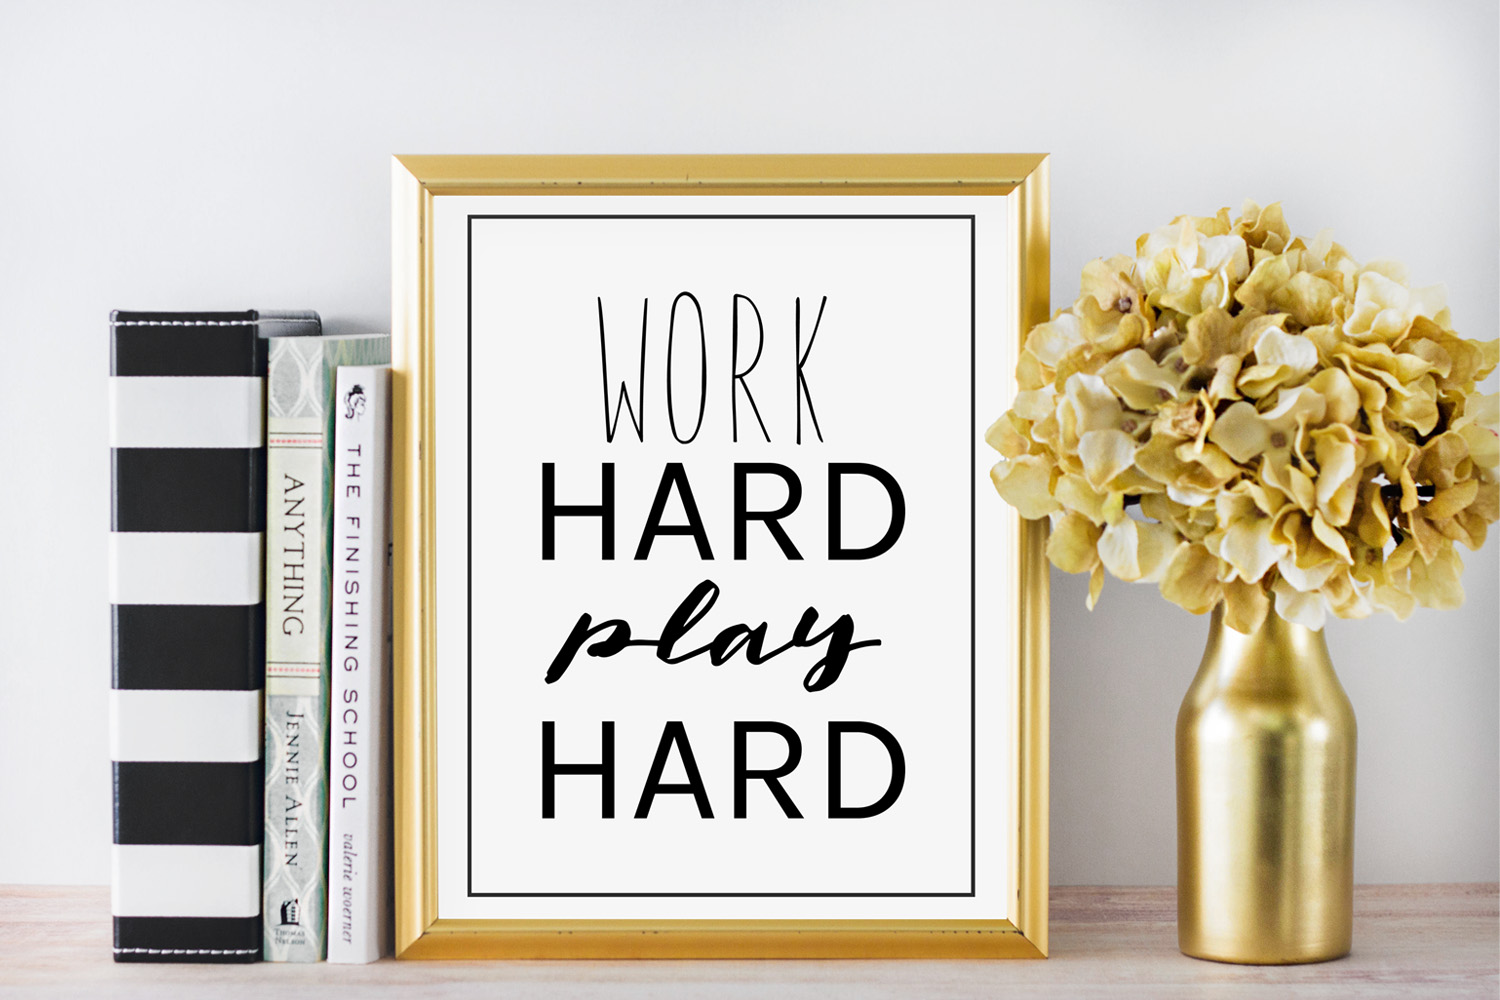 Work Hard Play Hard Quote.jpg